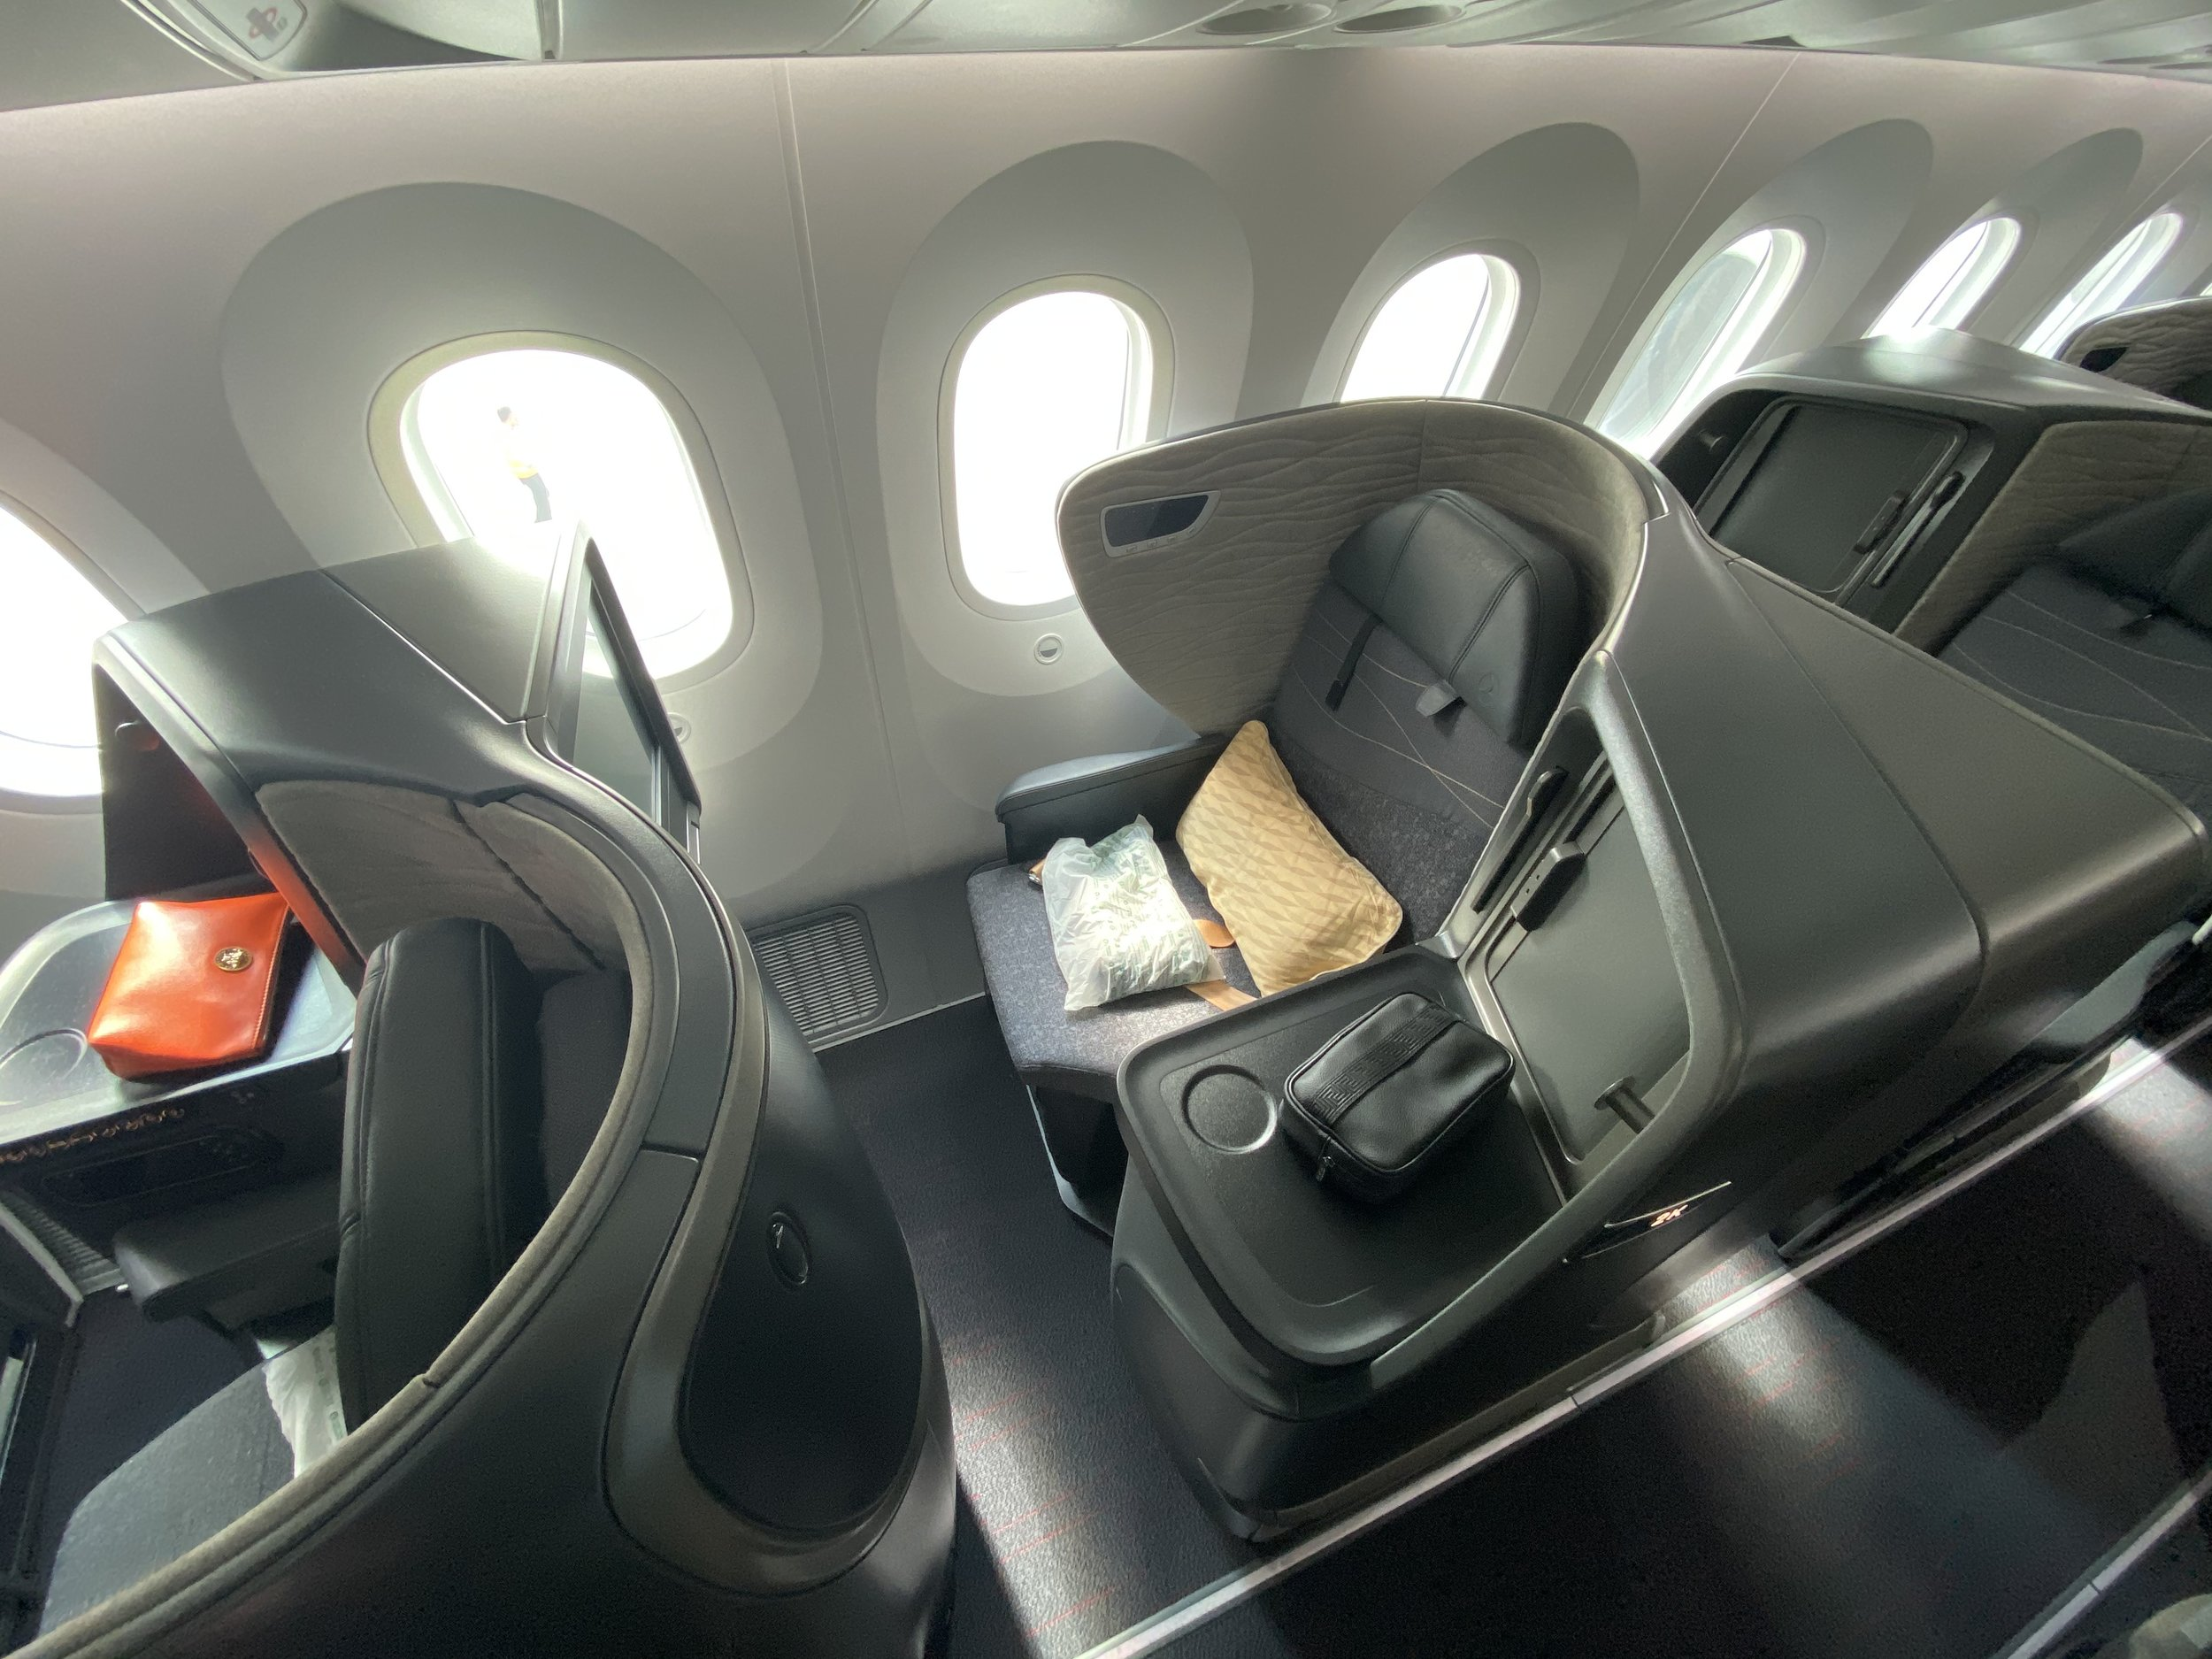 Turkish Airlines 787-9 Business Class Seat